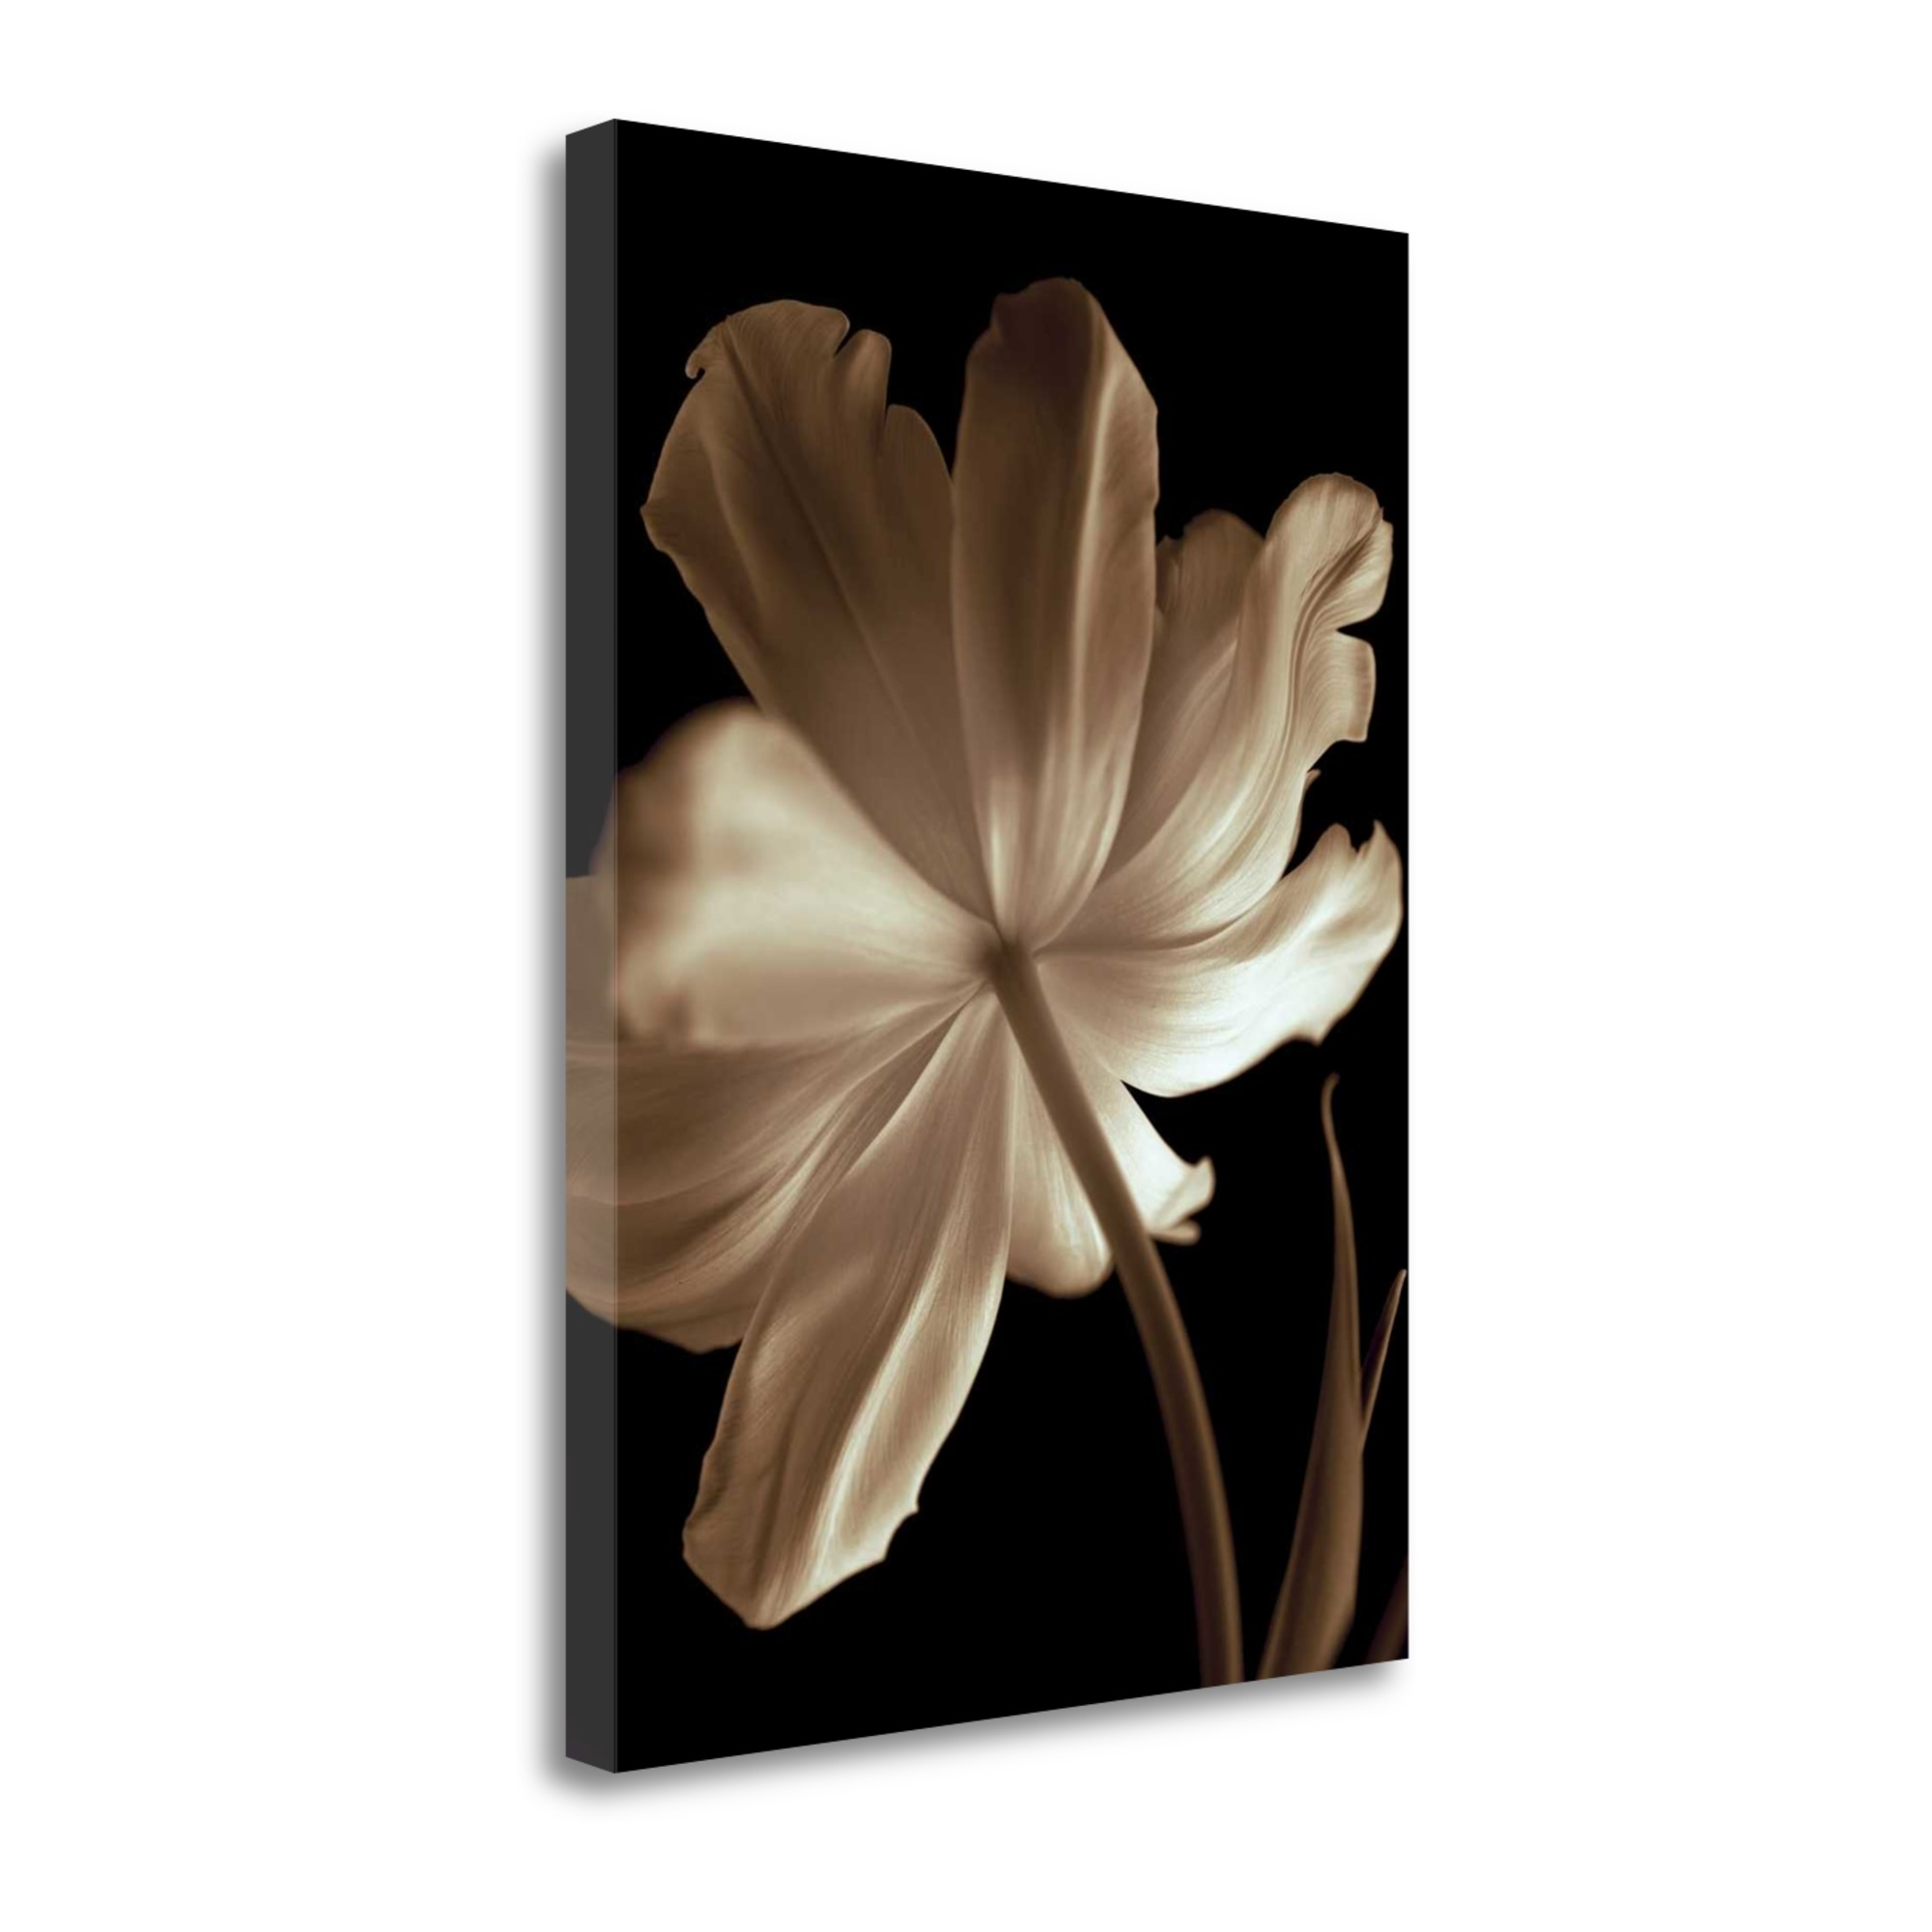 "Champagne Tulip II By Charles Britt, 21"" x 29\"" Fine Art Giclee Print on Gallery Wrap Canvas, Ready to Hang"